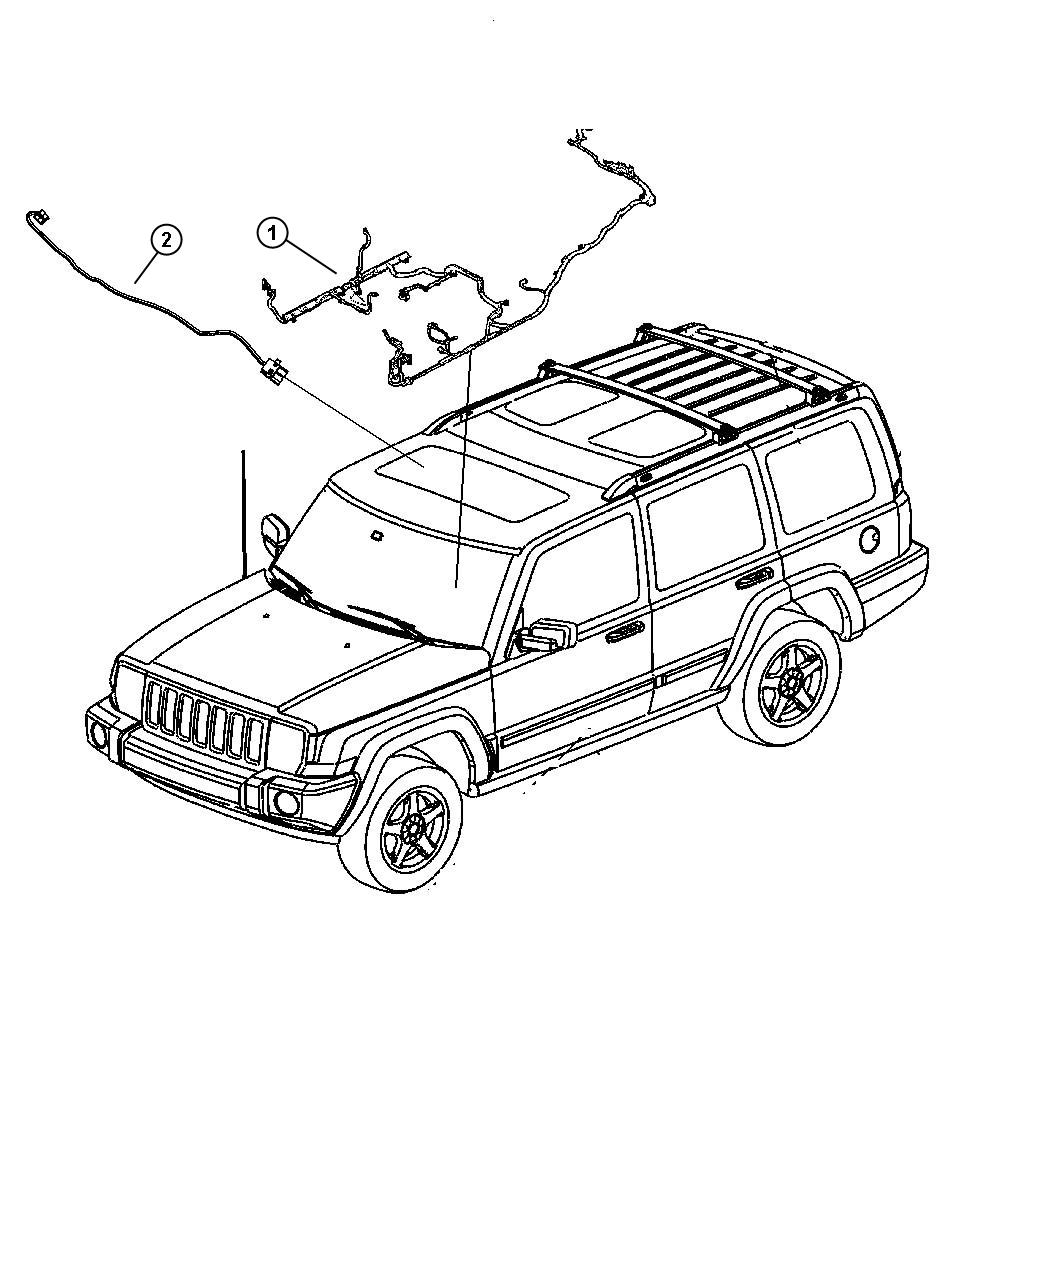 2010 Oem Jeep Commander Wiring Diagrams. Jeep. Auto Wiring